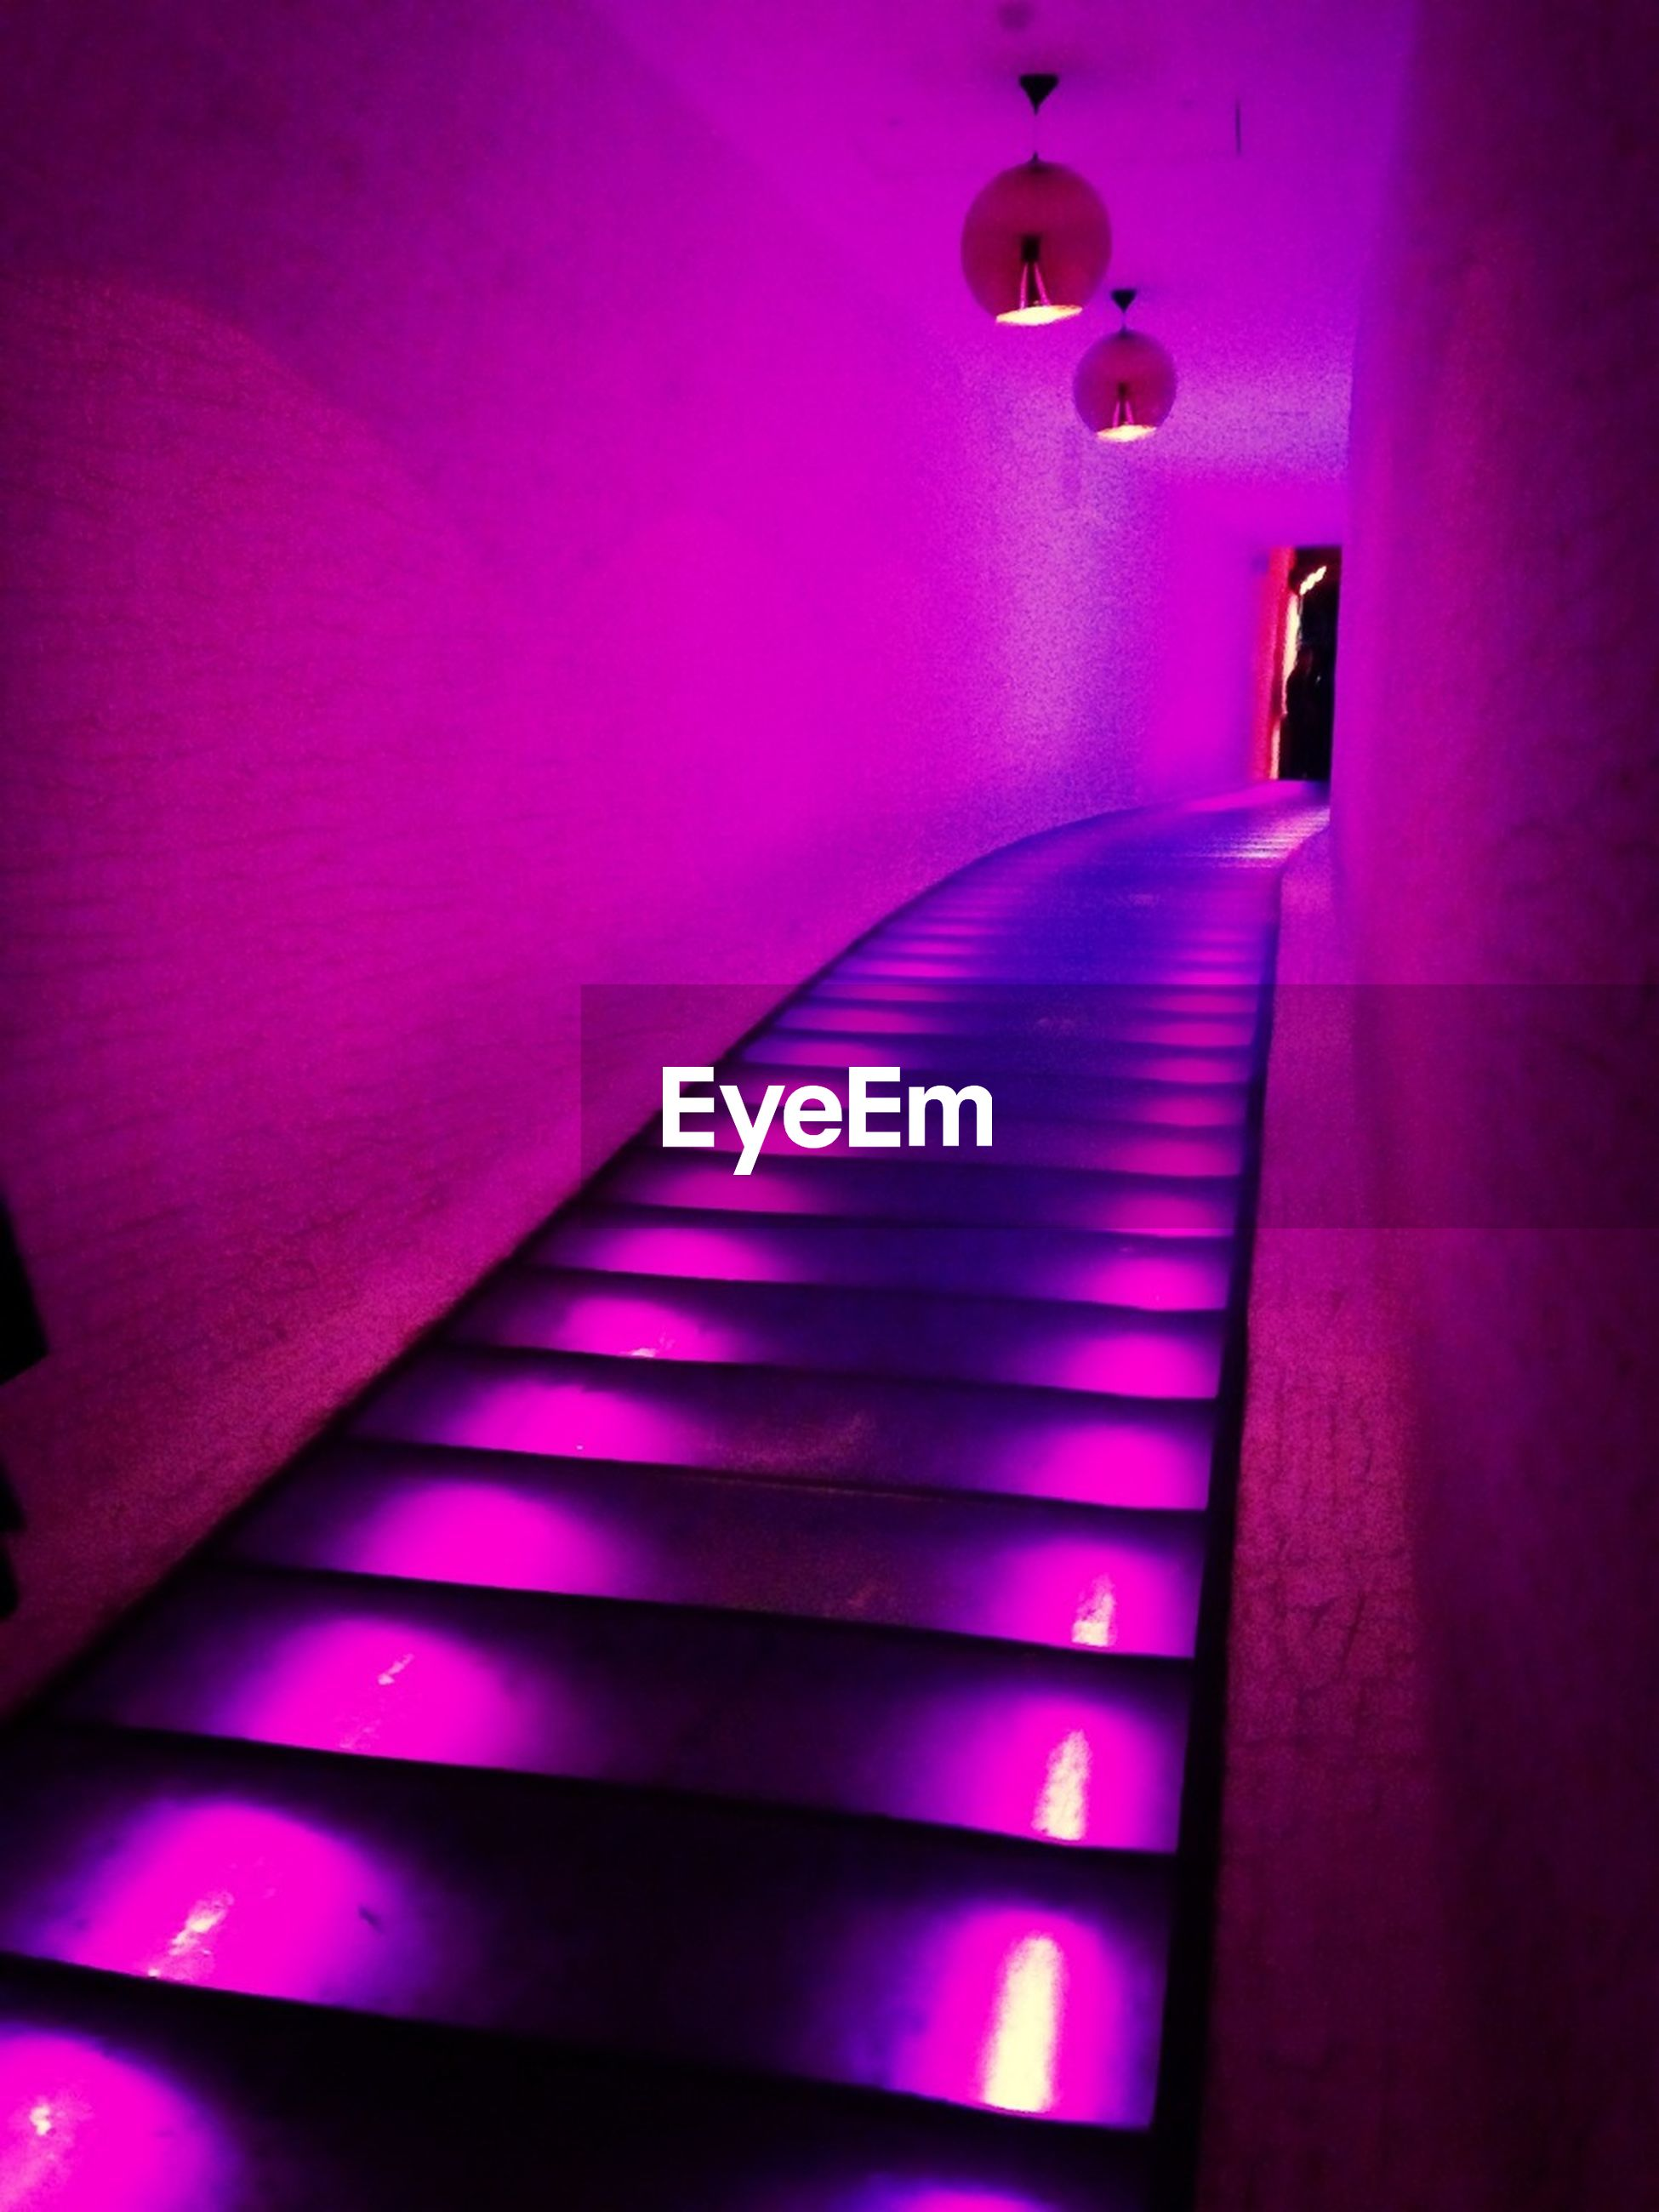 indoors, illuminated, staircase, steps, steps and staircases, lighting equipment, wall - building feature, light - natural phenomenon, the way forward, escalator, railing, modern, pattern, absence, built structure, architecture, ceiling, no people, low angle view, empty